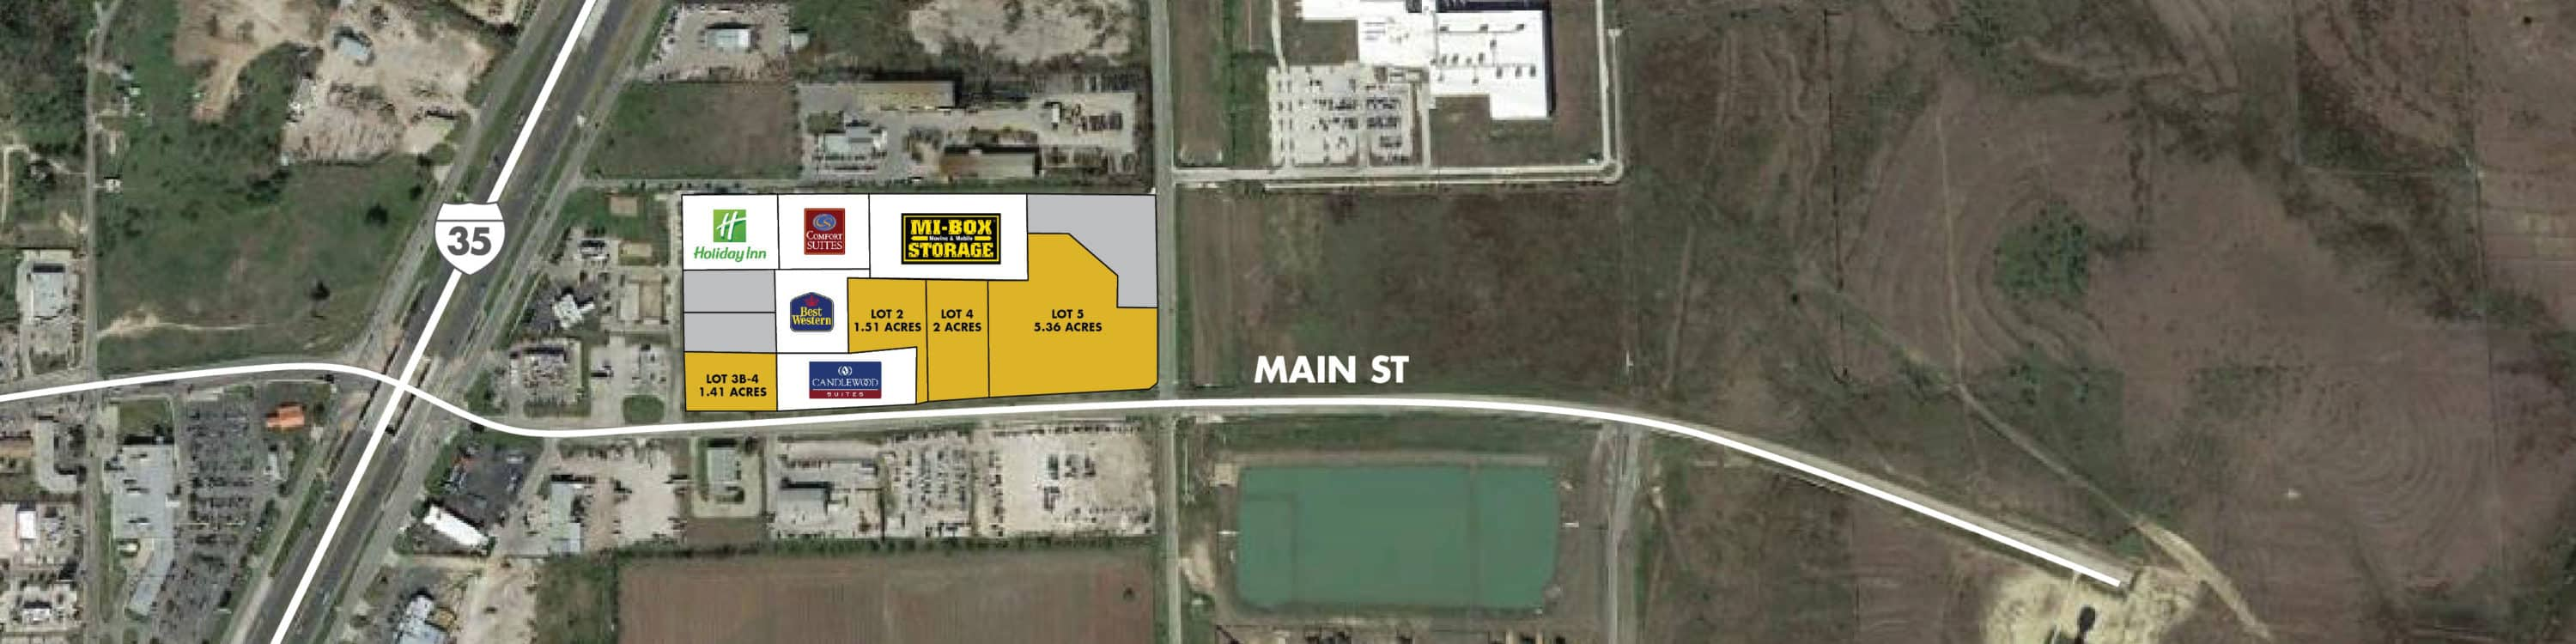 Main Street Pad Sites | Land for Sale in Buda, Texas